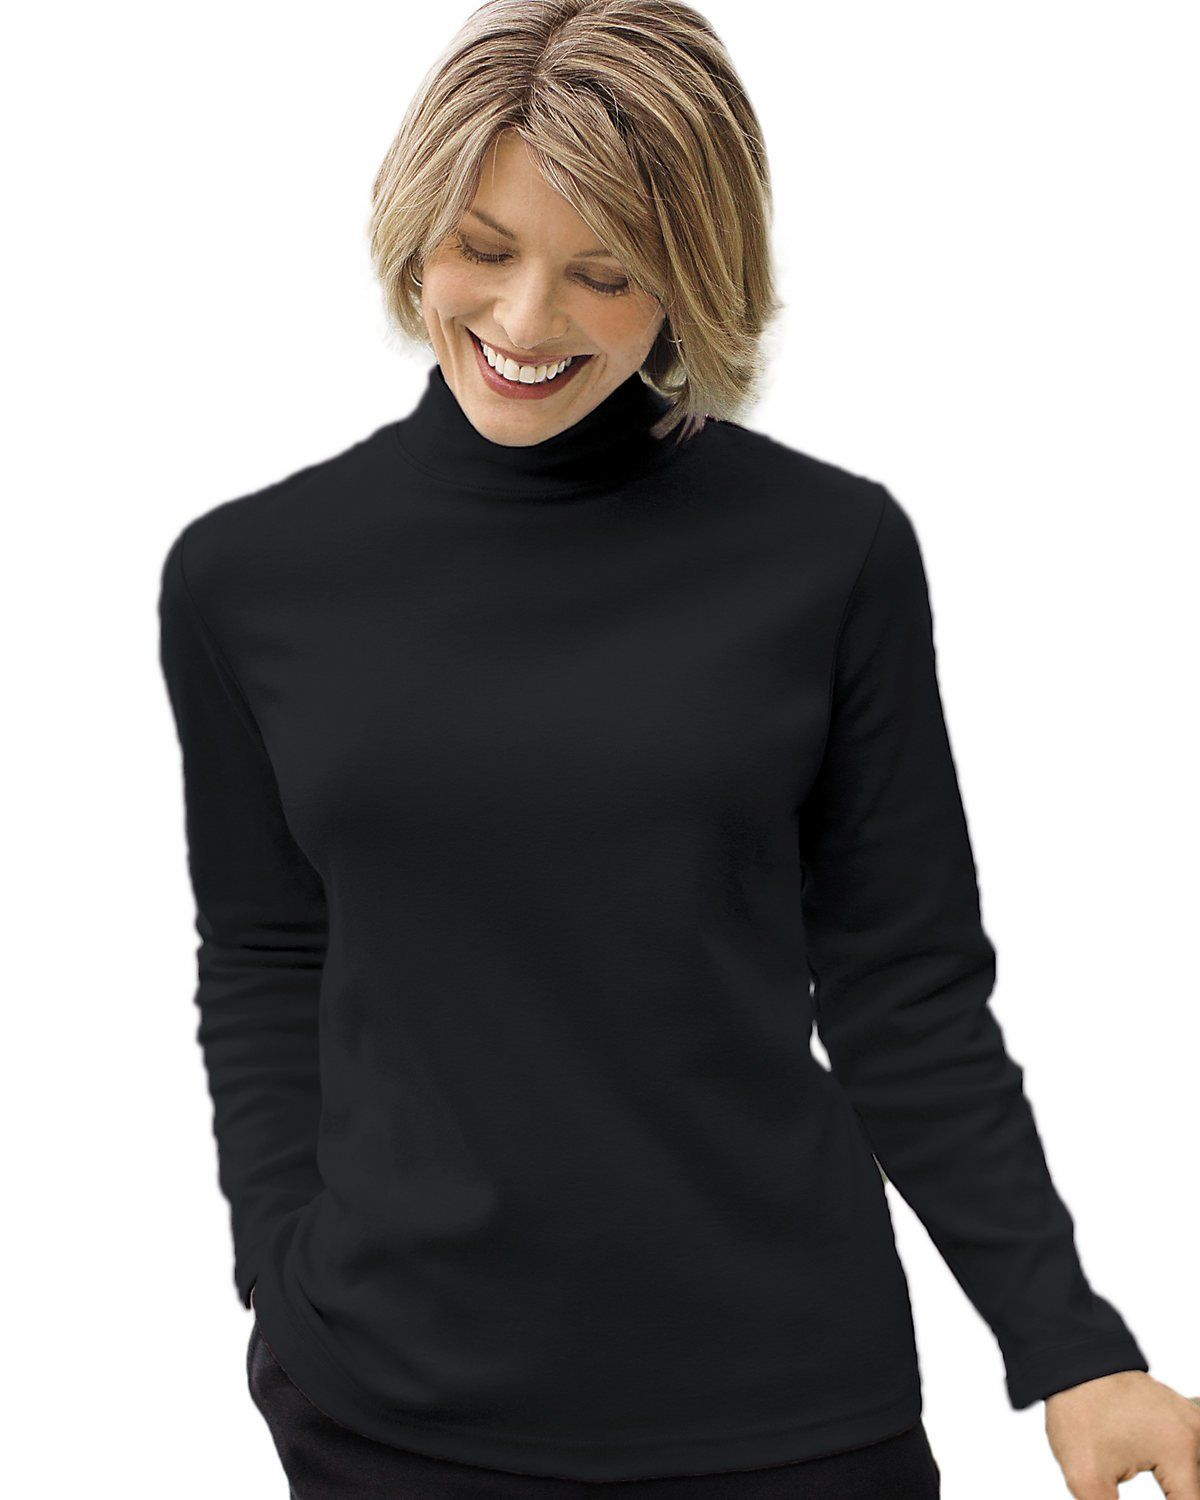 1c2bc96fea66d7 UltraSofts by National Women s Mock Turtleneck at Amazon Women s Clothing  store  Ladies Mock Turtleneck Tops